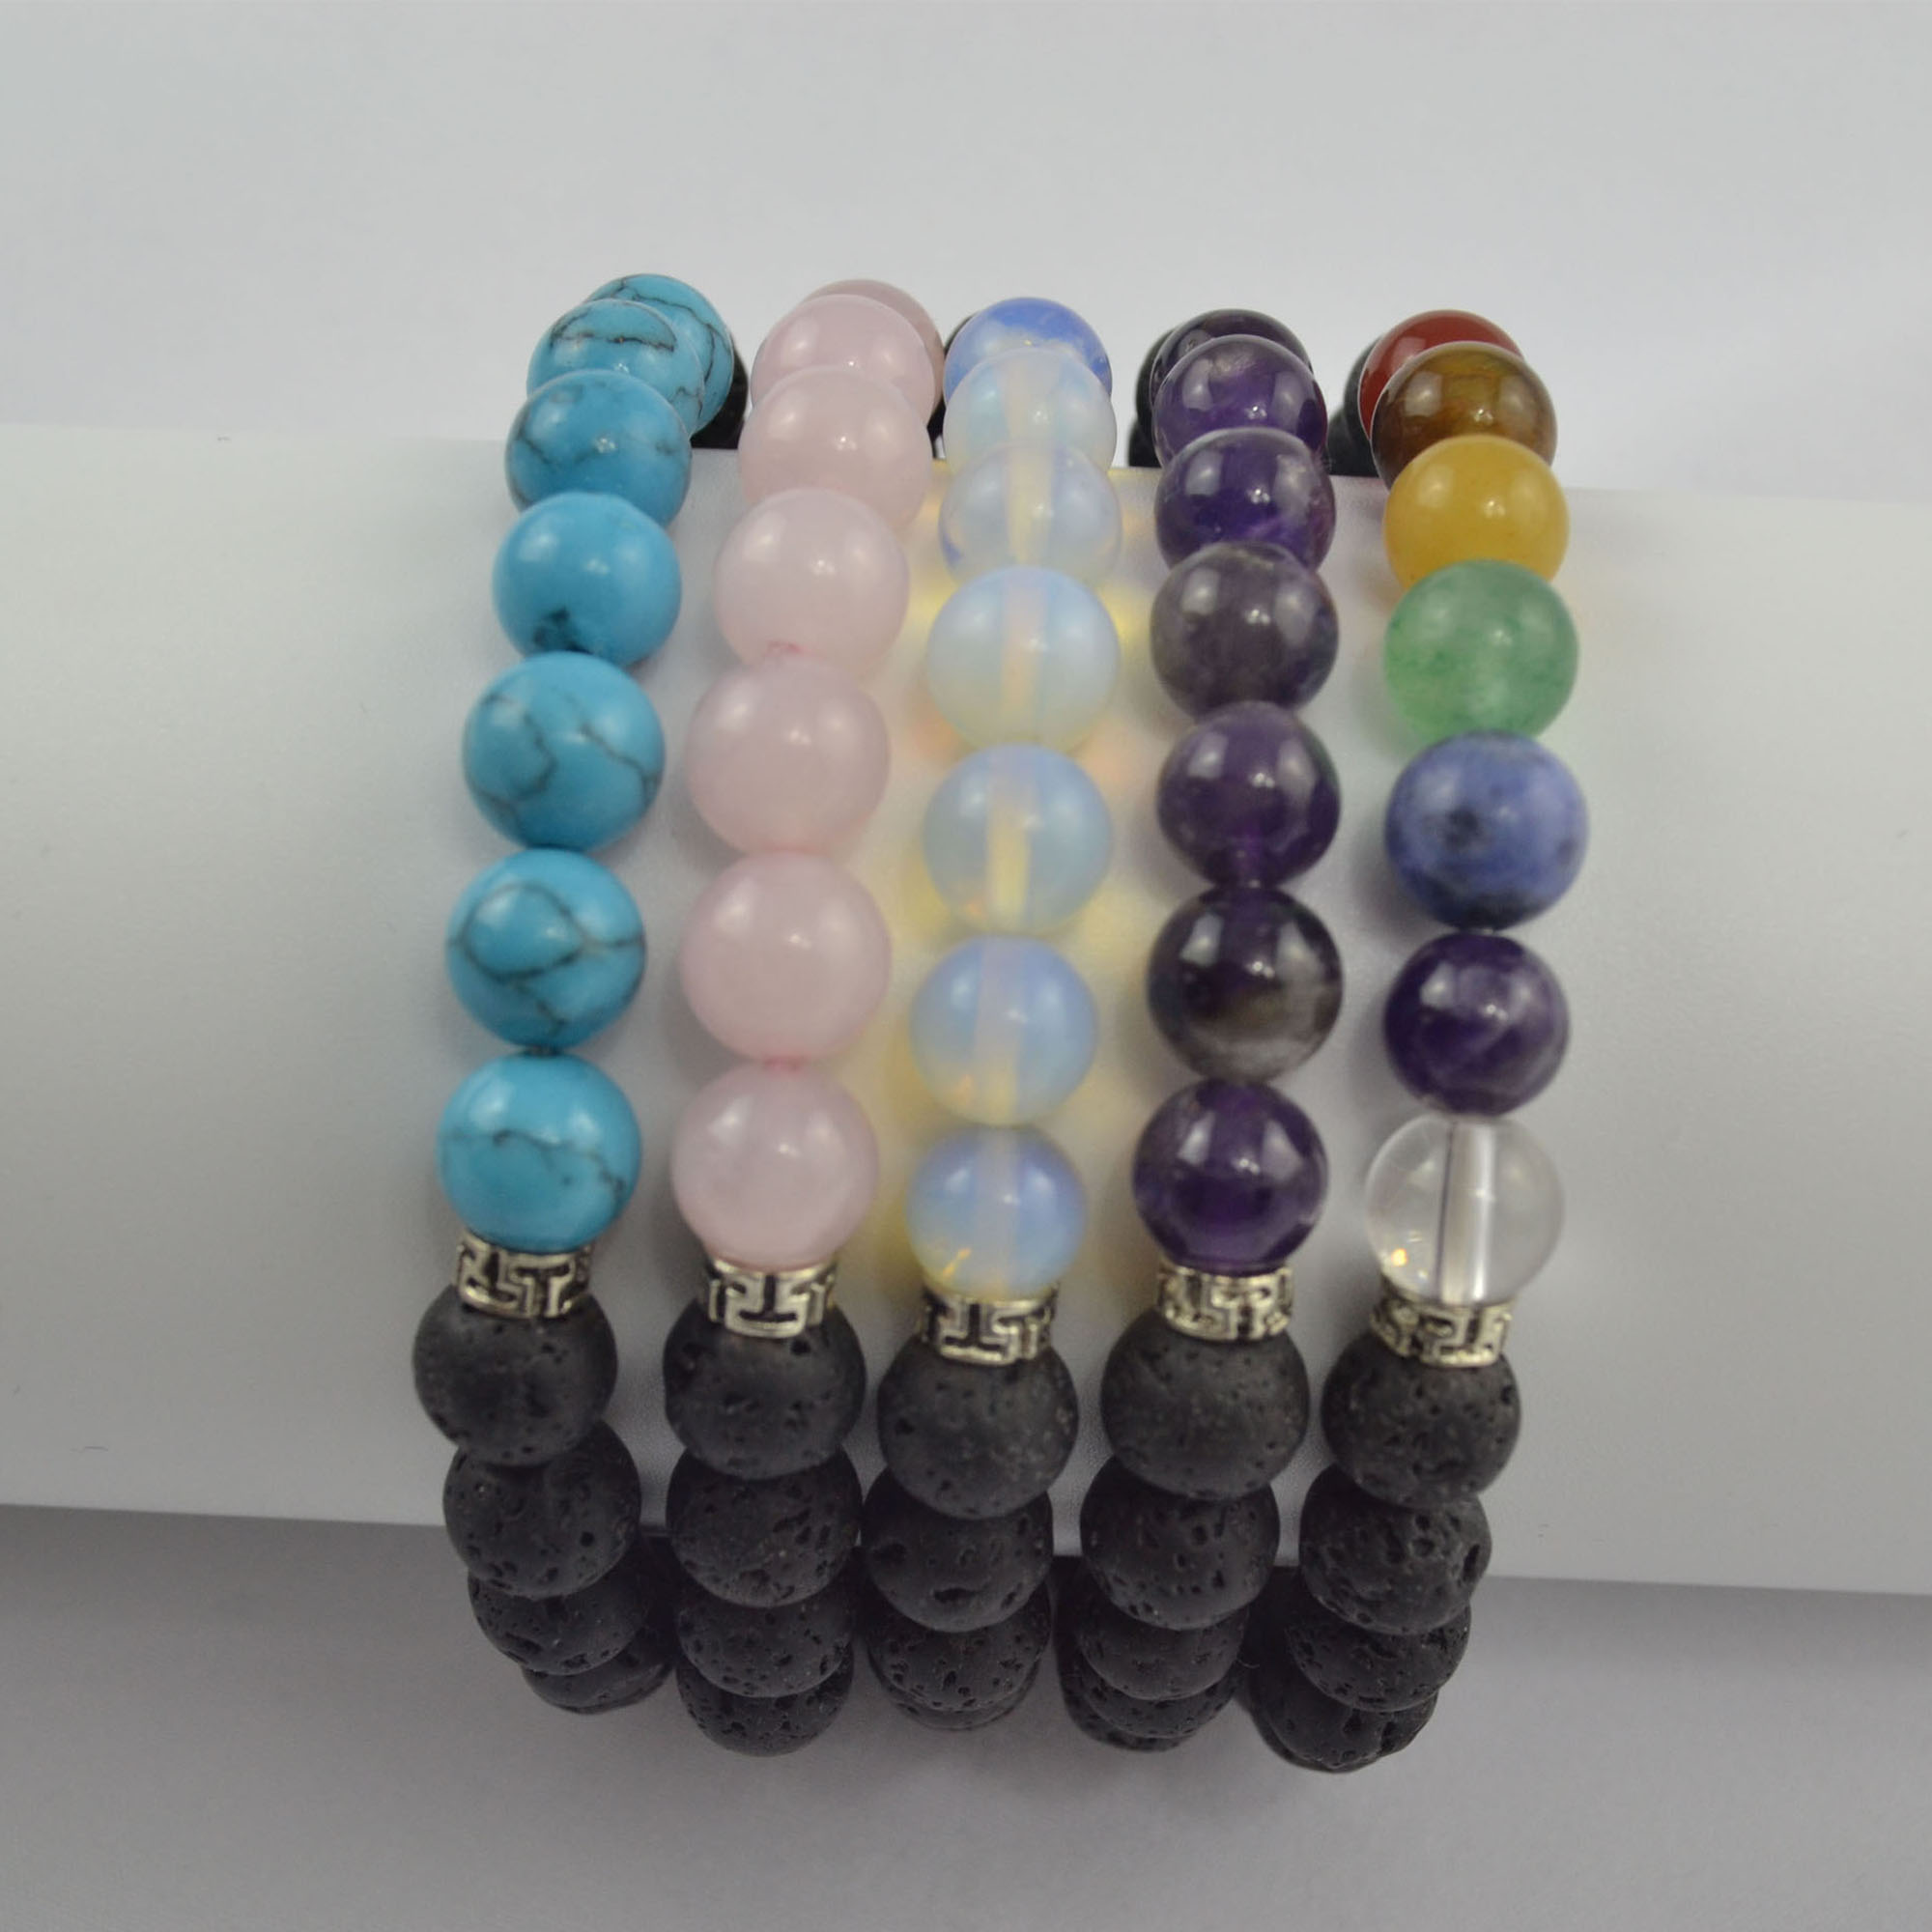 Chinese wholesale Semi-Gem Inspiritional Stone - lava bead bracelet lava stone bracelet lava beads with semi-gem stone beads bracelet – Harmony